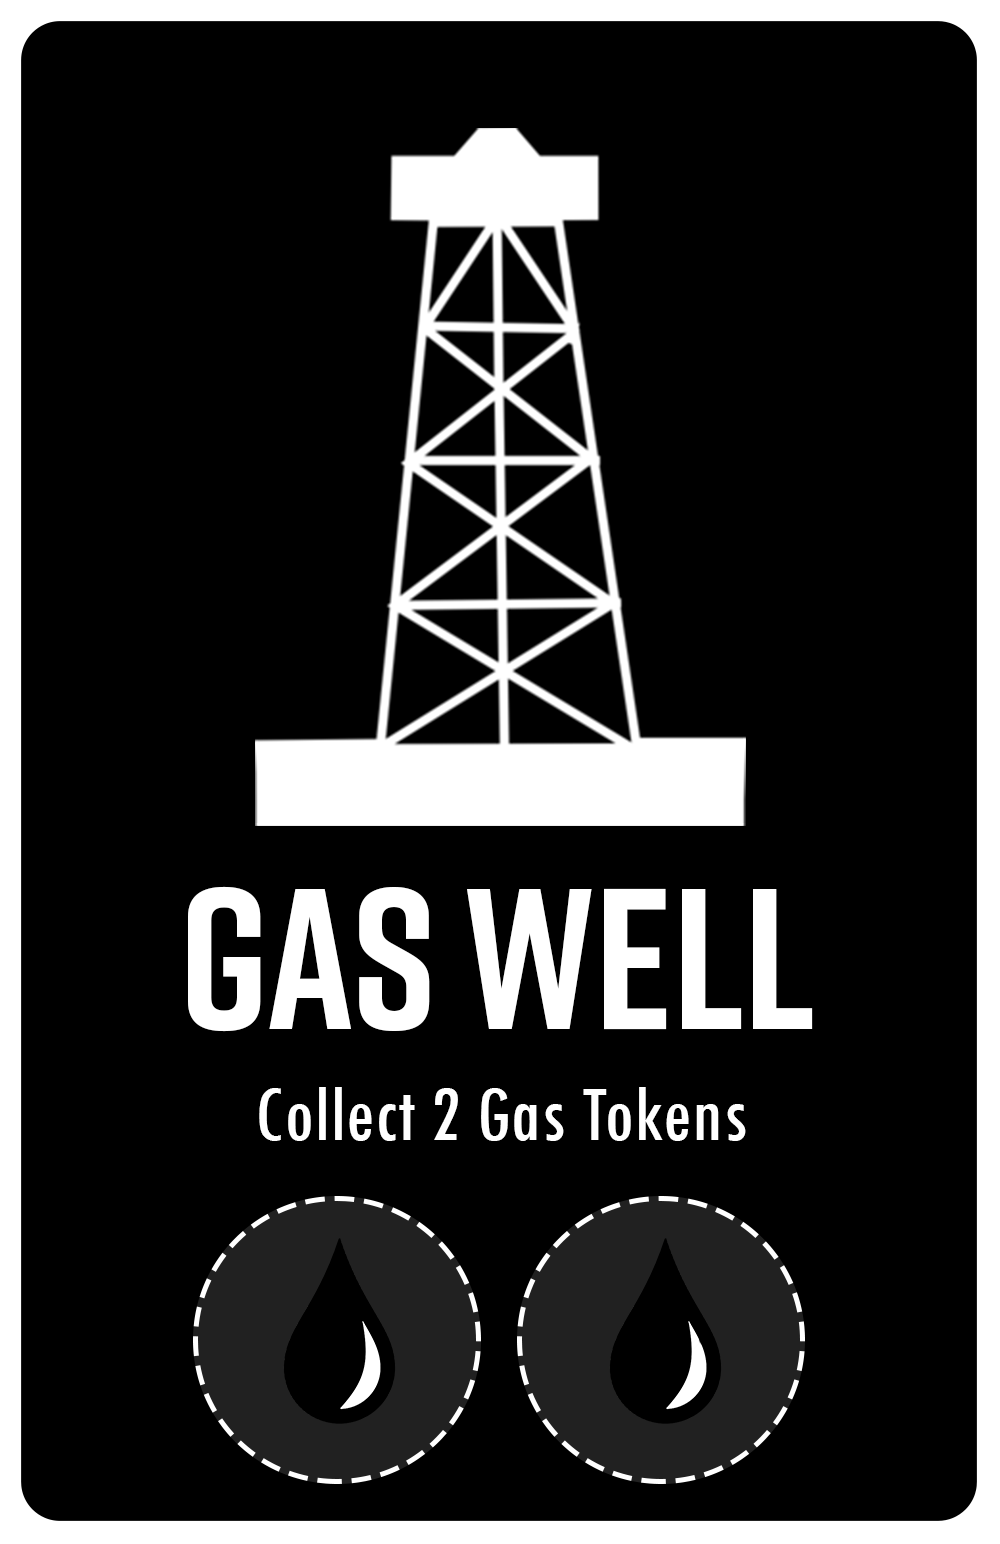 Indicates how many Gas Tokens the Player will receive